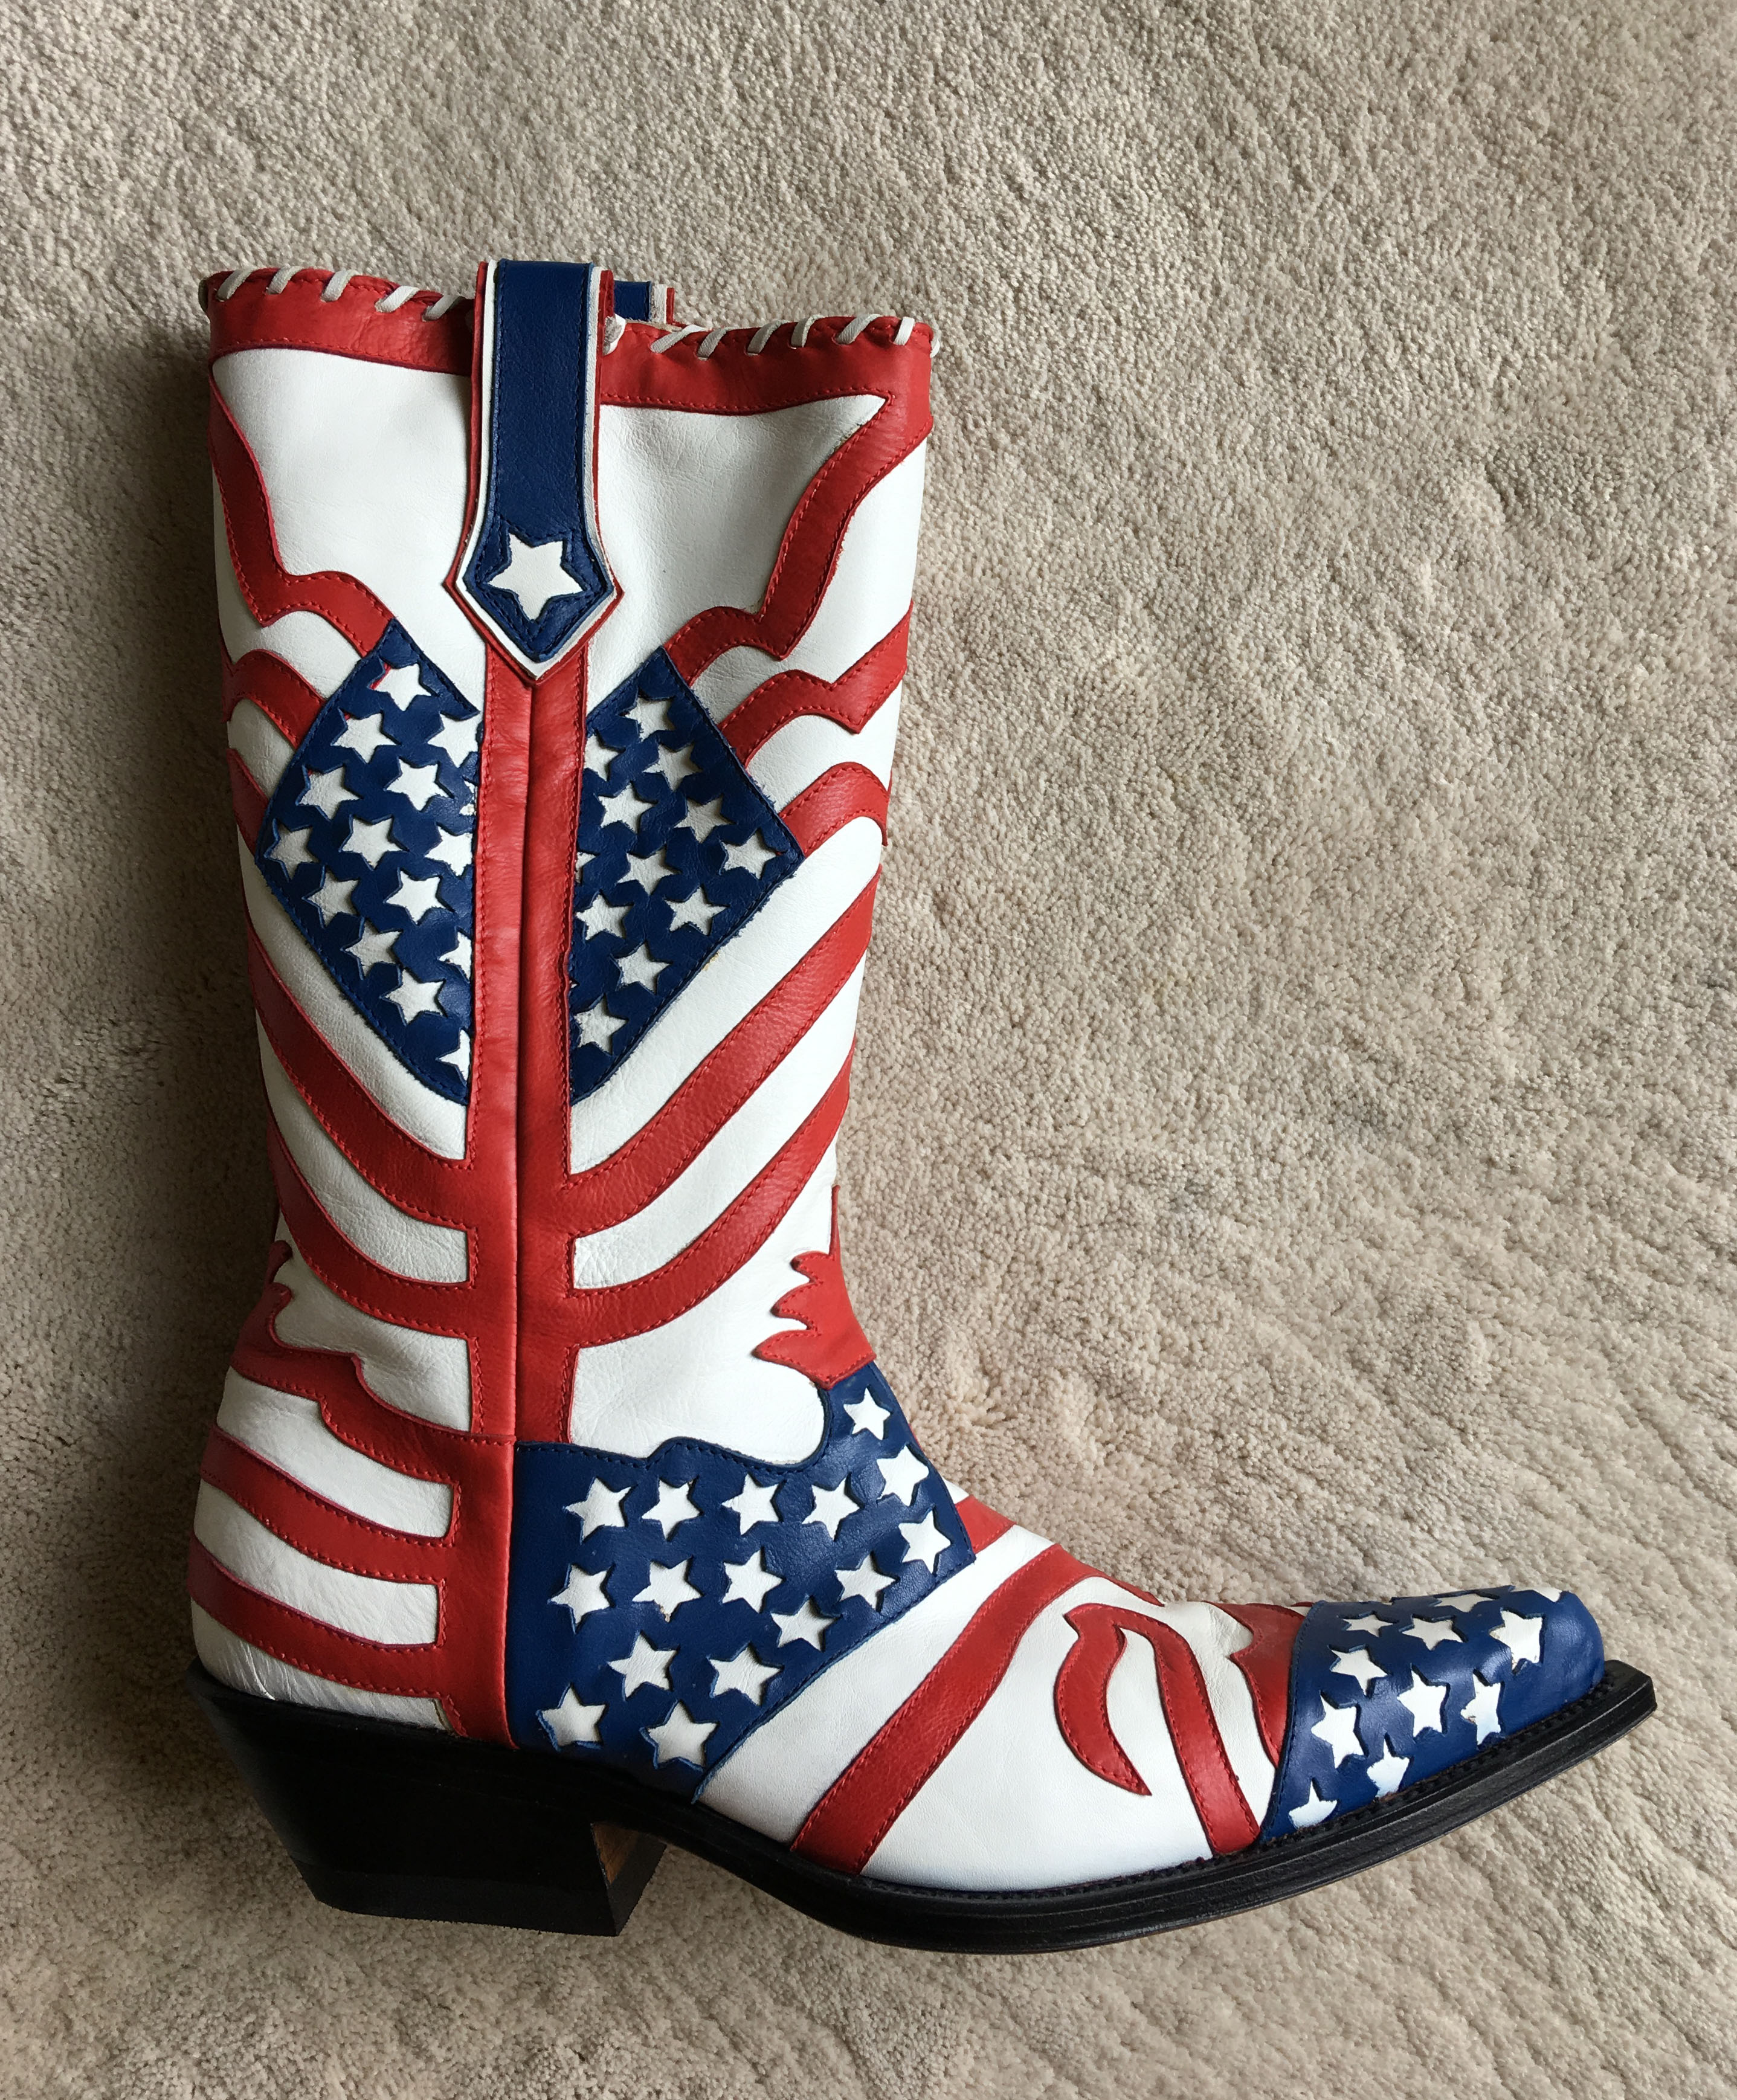 HANDMADE in italy OVEST cowboy BOOTS w/USA Flag Overlay sz 41 EUR | 8 US